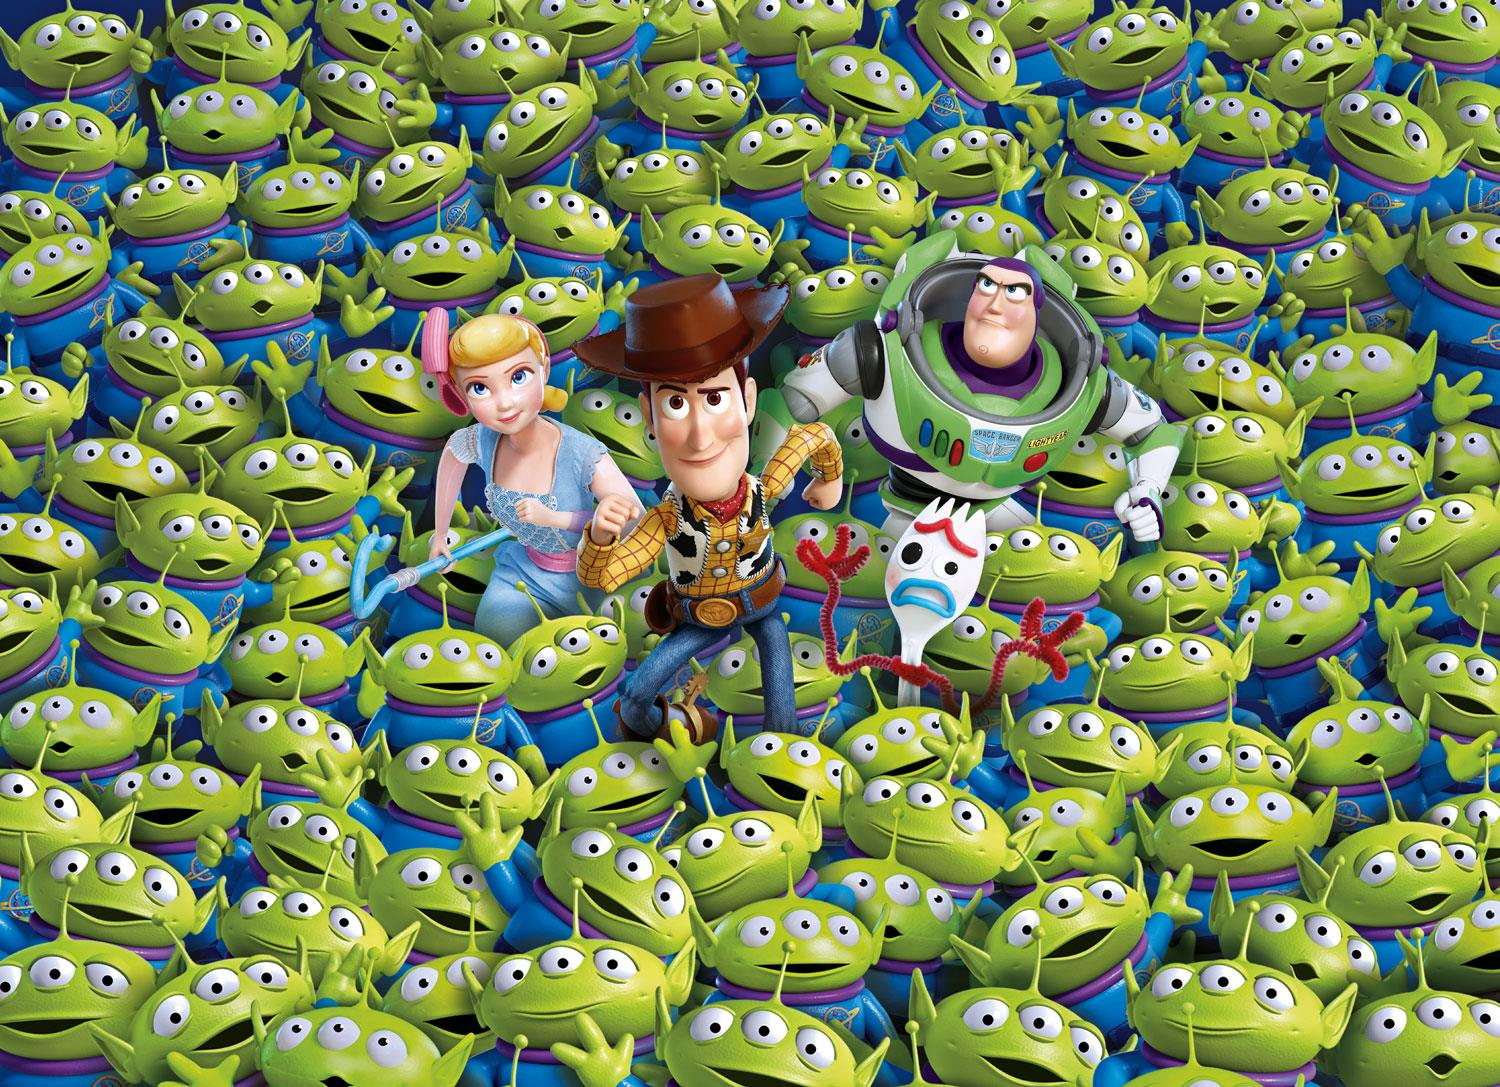 Clementoni Impossible Toy Story 4 High Quality Jigsaw Puzzle (1000 Pieces)